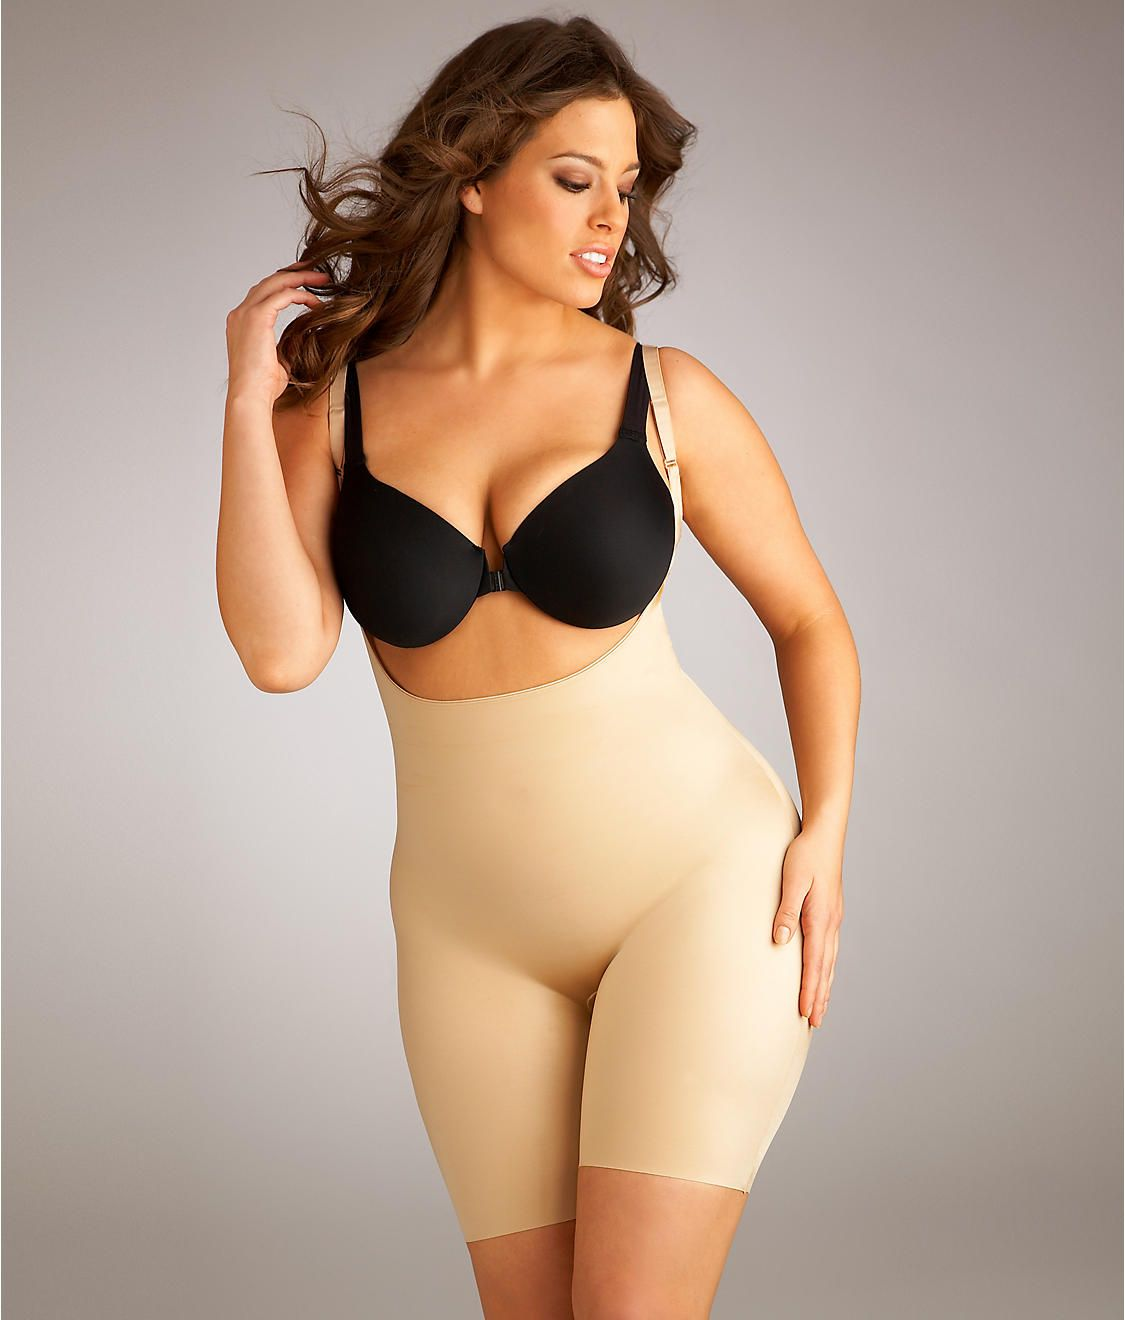 98b8cb6b1cd SPANX Slimplicity Open-bust Mid-Thigh Body Briefer Plus Size Shapewear 991P  at BareNecessities.com 88.00